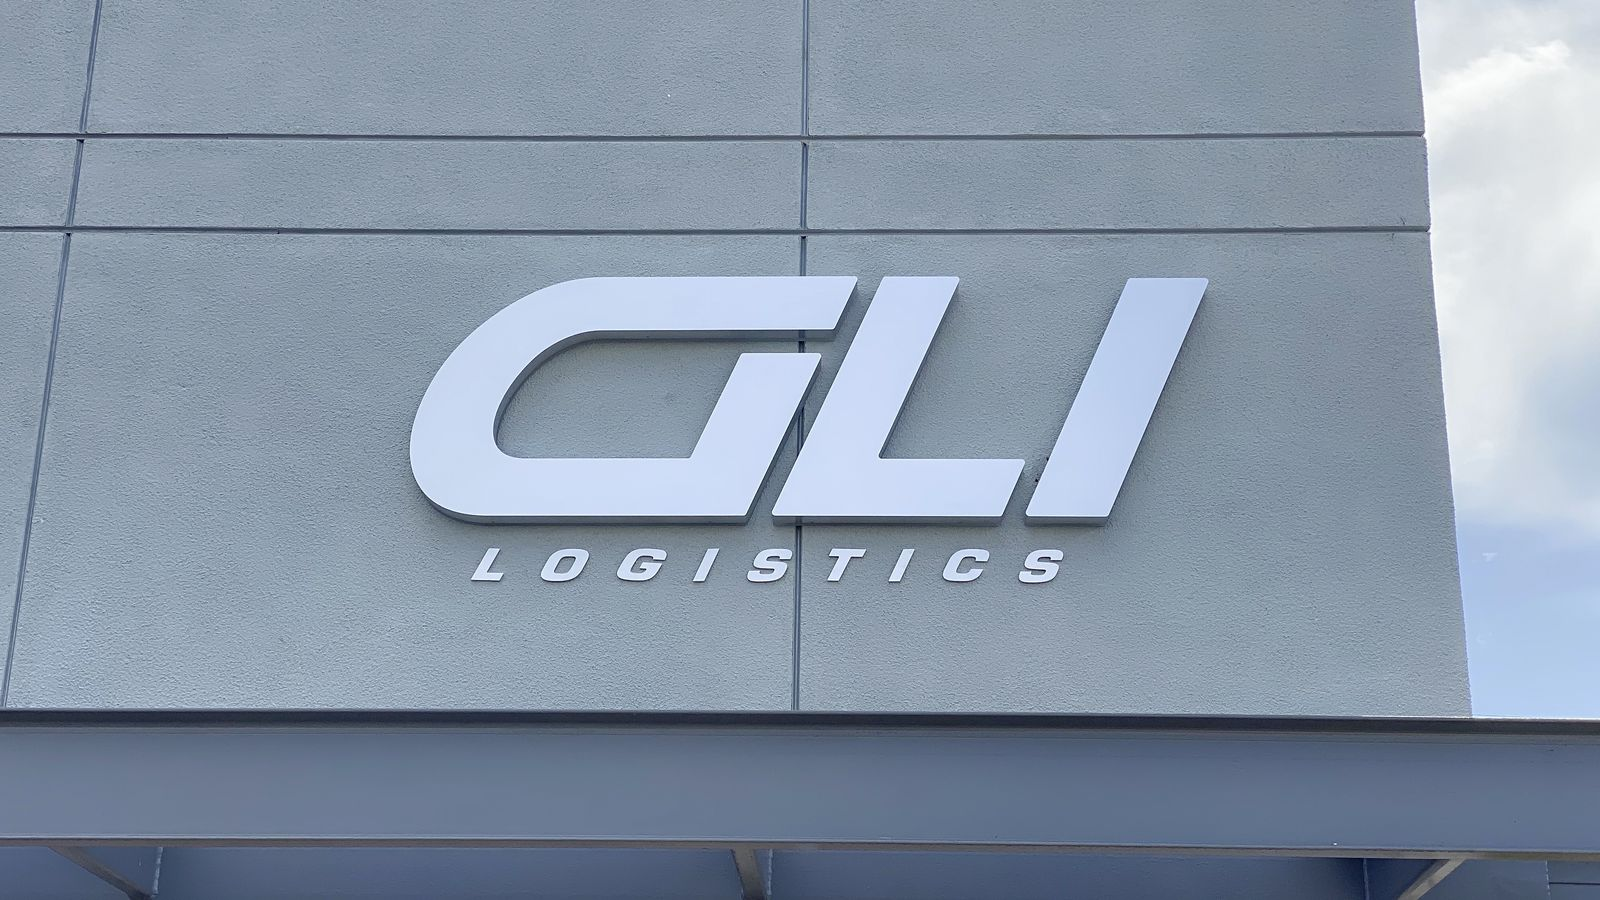 GLI Logistics 3d sign in a big size displaying the brand name made of aluminum and acrylic